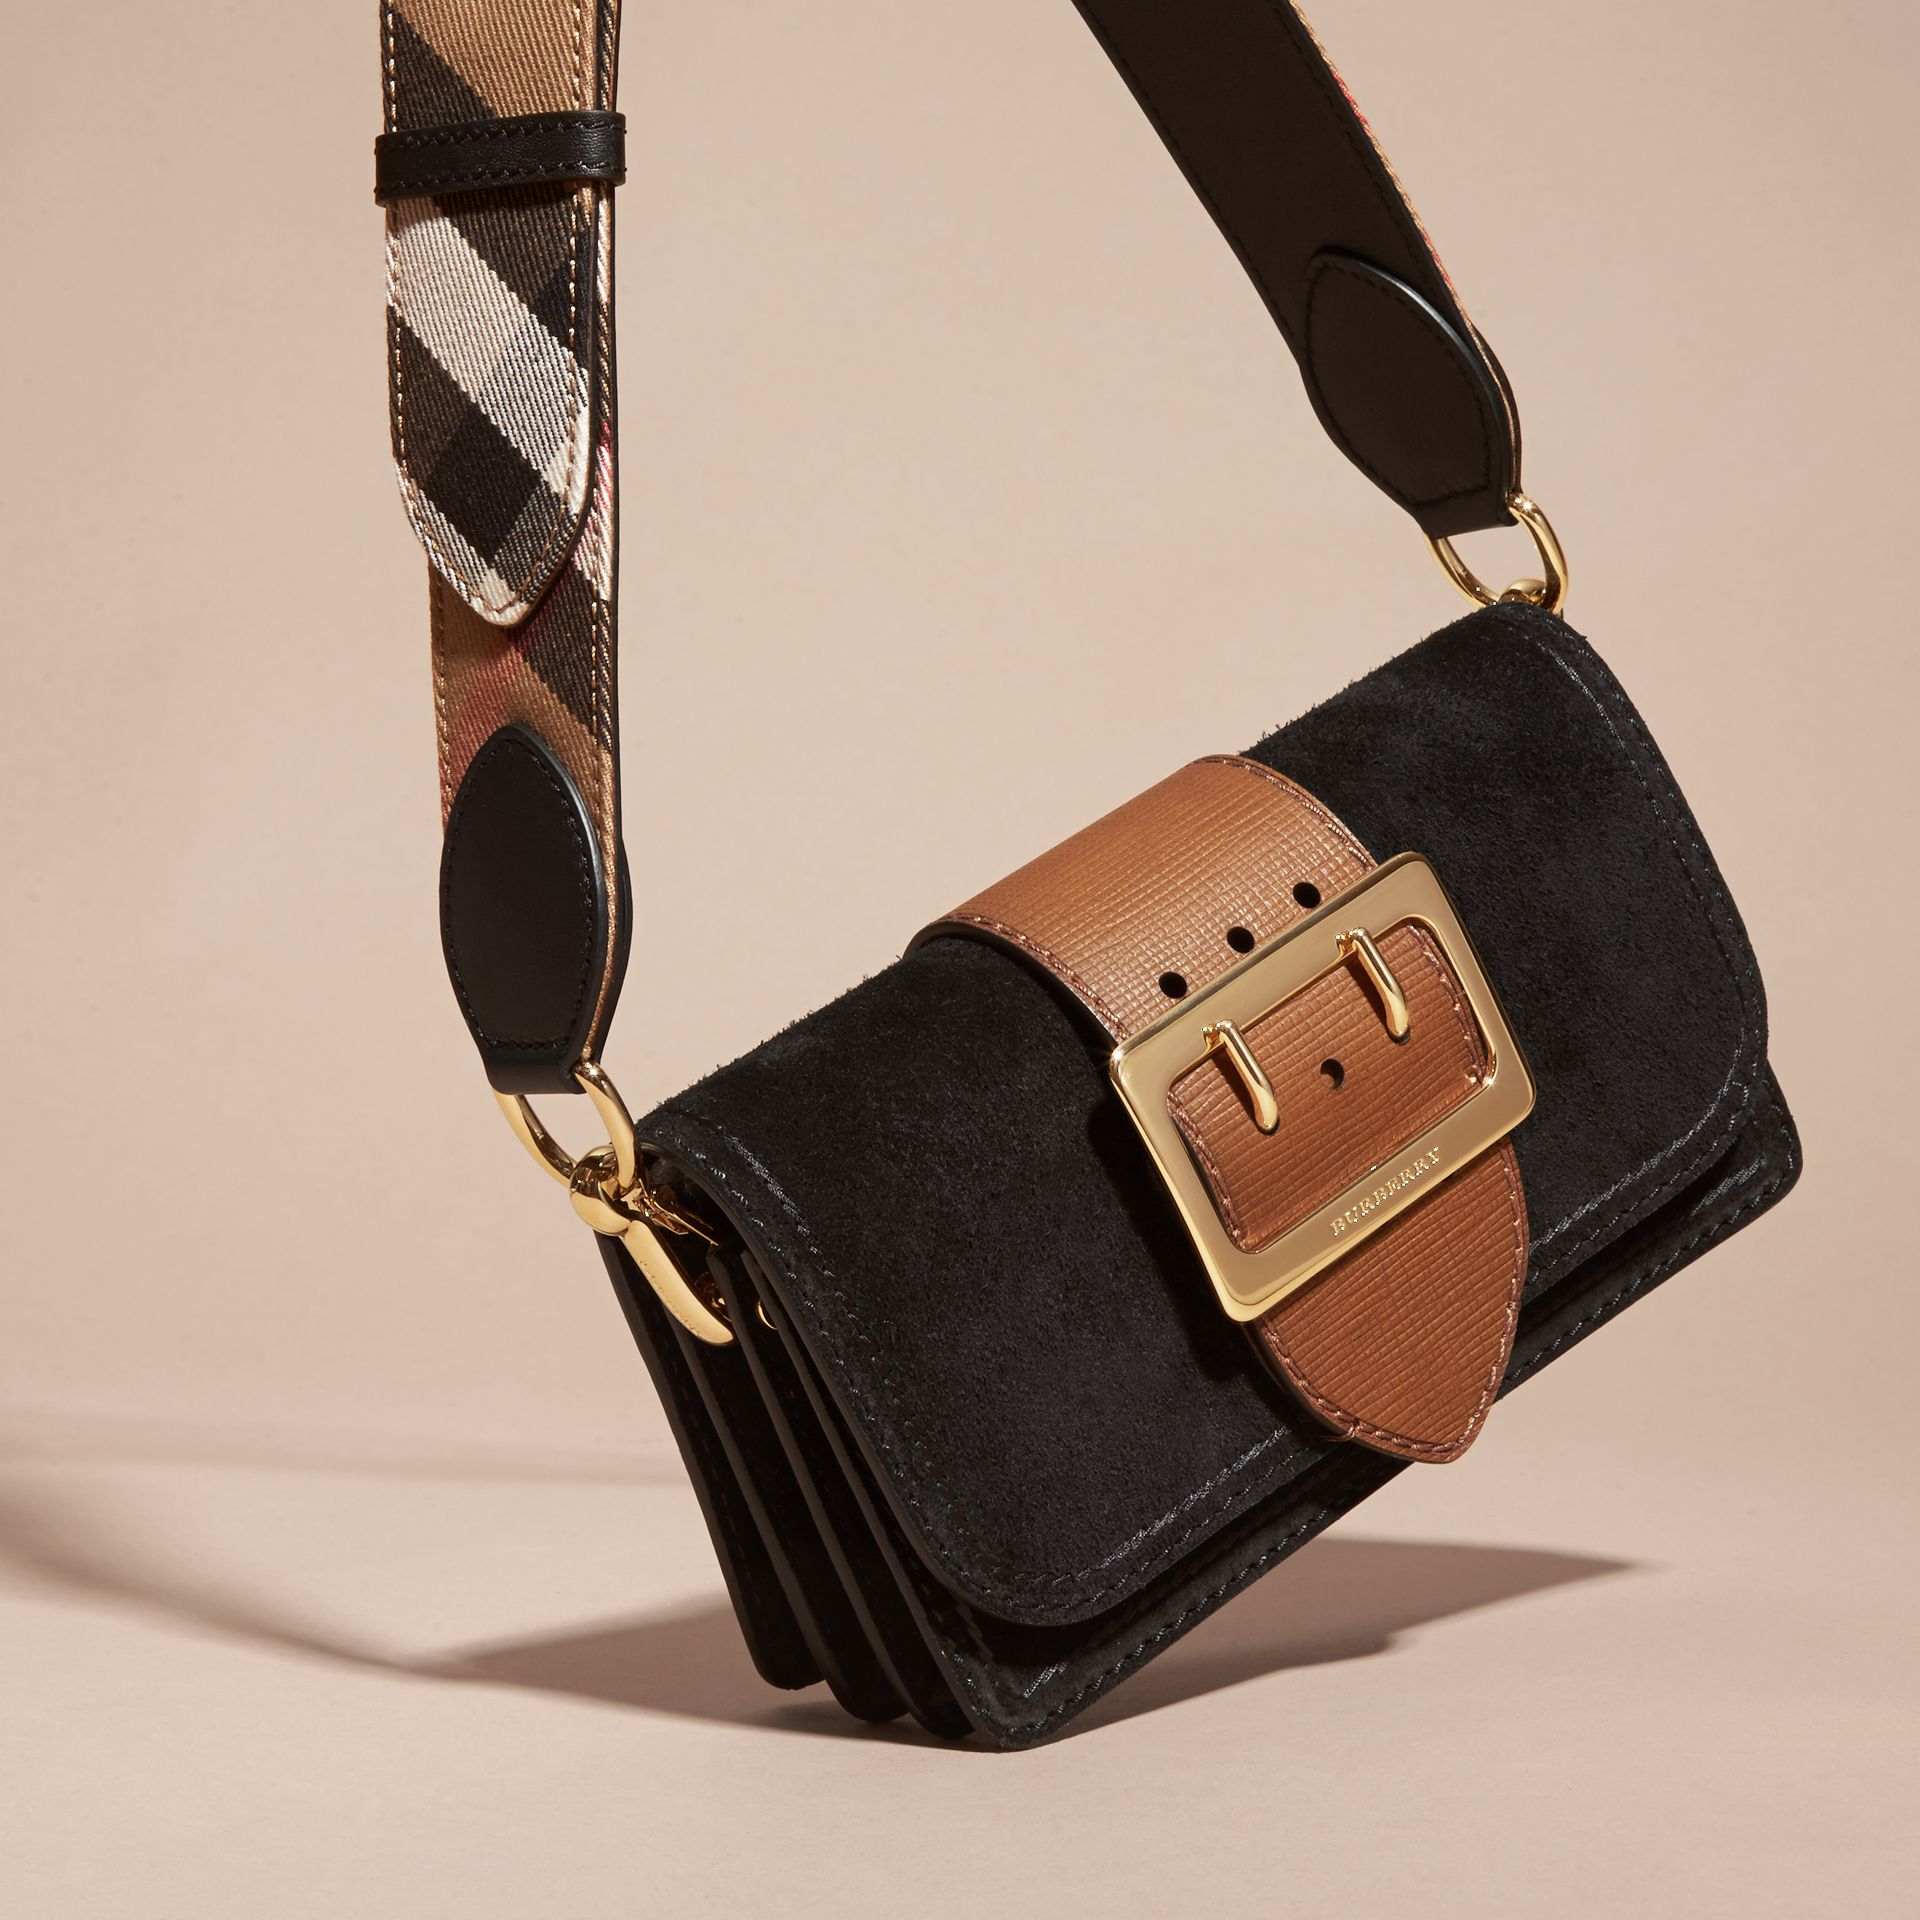 Black / tan The Small Buckle Bag in Suede with Topstitching Black / Tan - gallery image 8